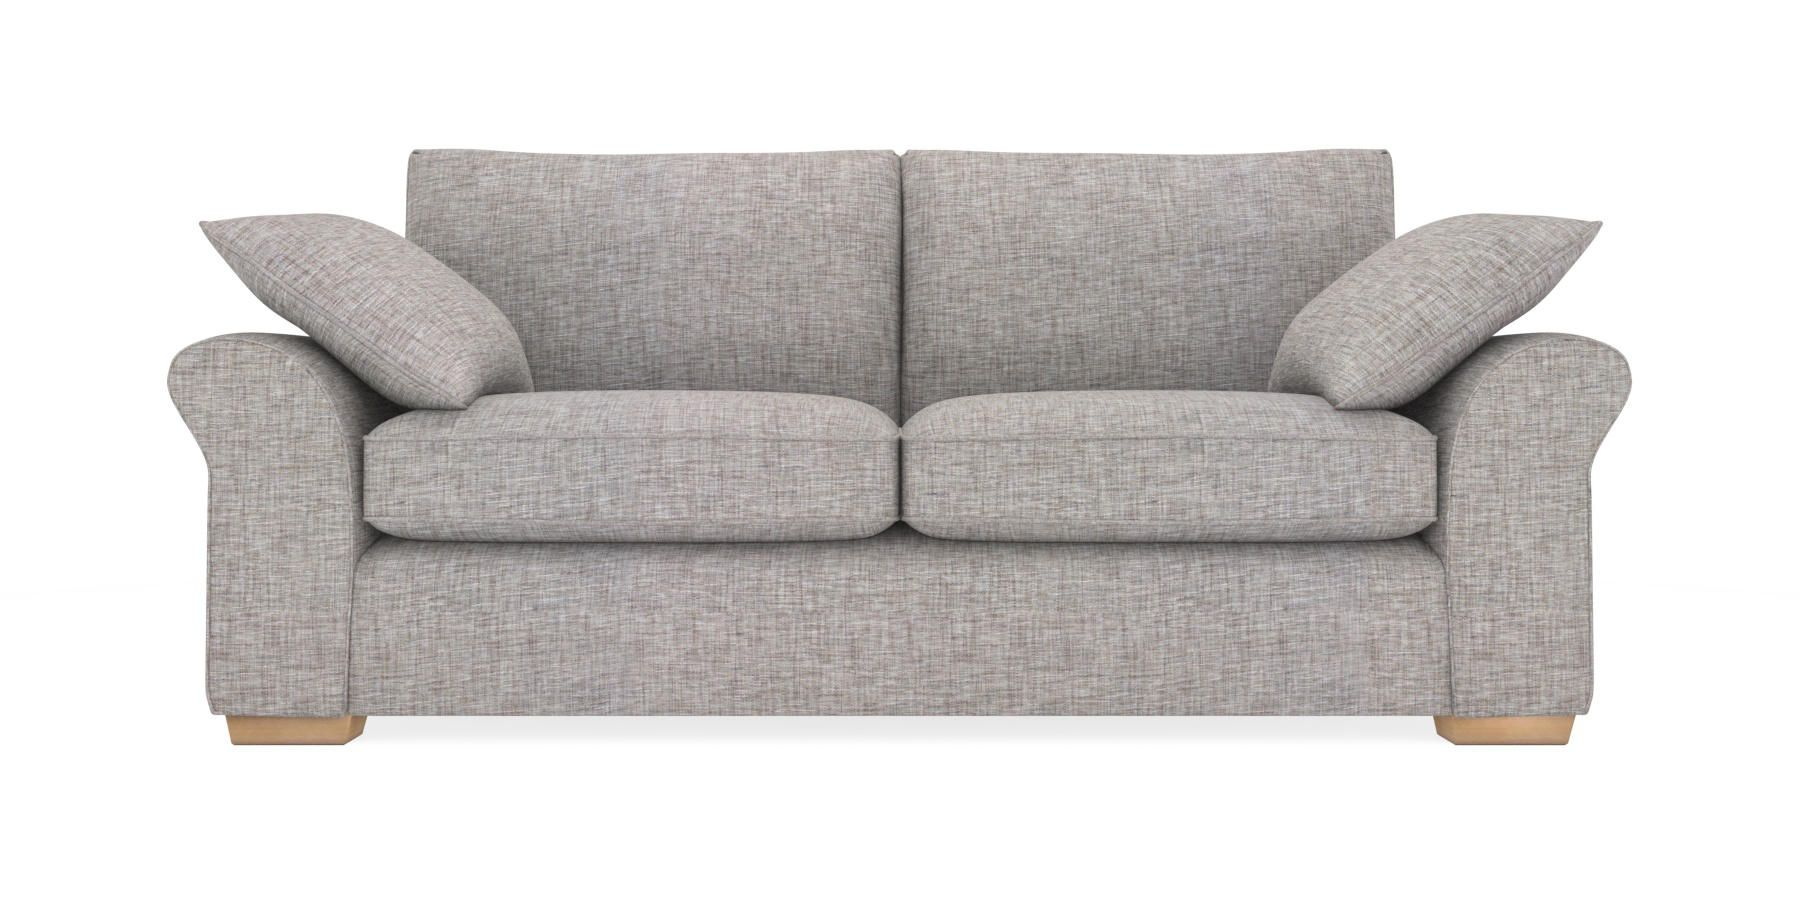 Sofa Seats Online Garda Large Sofa 3 Seats Boucle Blend